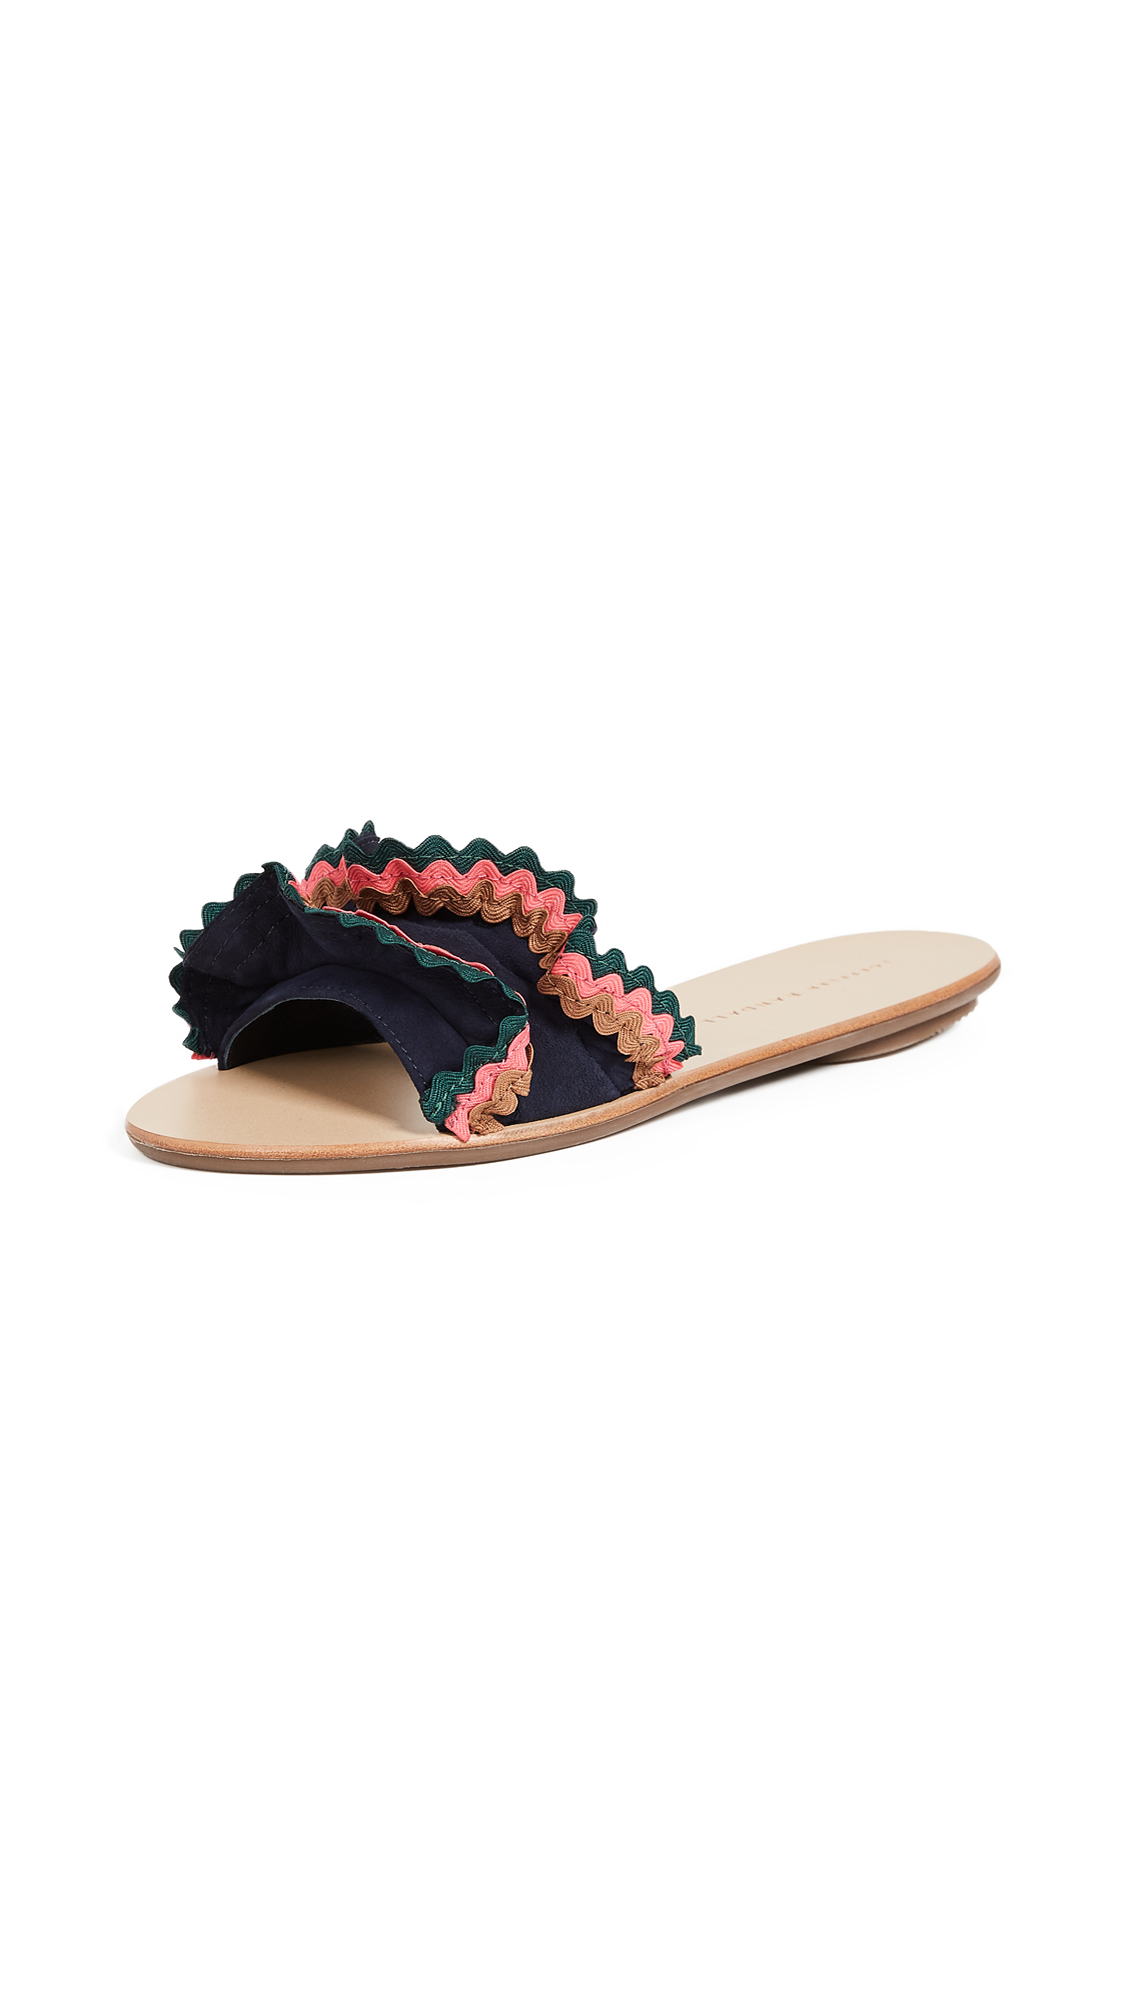 Photo of Loeffler Randall Birdie Ruffle Slides - buy Loeffler Randall shoes